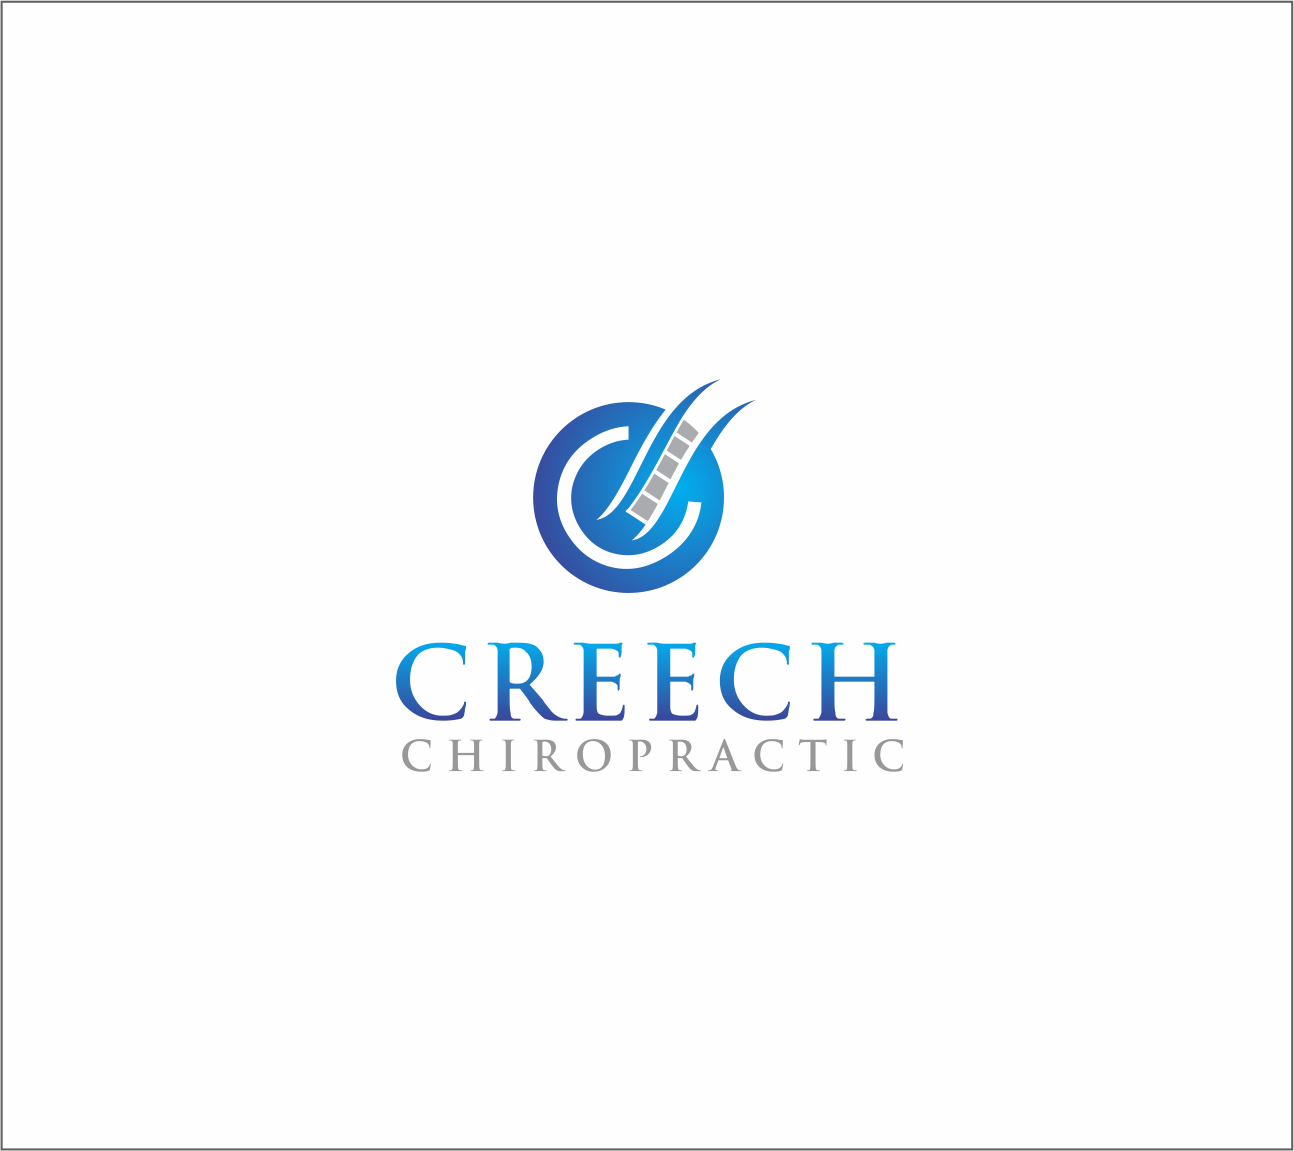 Logo Design by Armada Jamaluddin - Entry No. 94 in the Logo Design Contest Imaginative Logo Design for Creech Chiropractic.